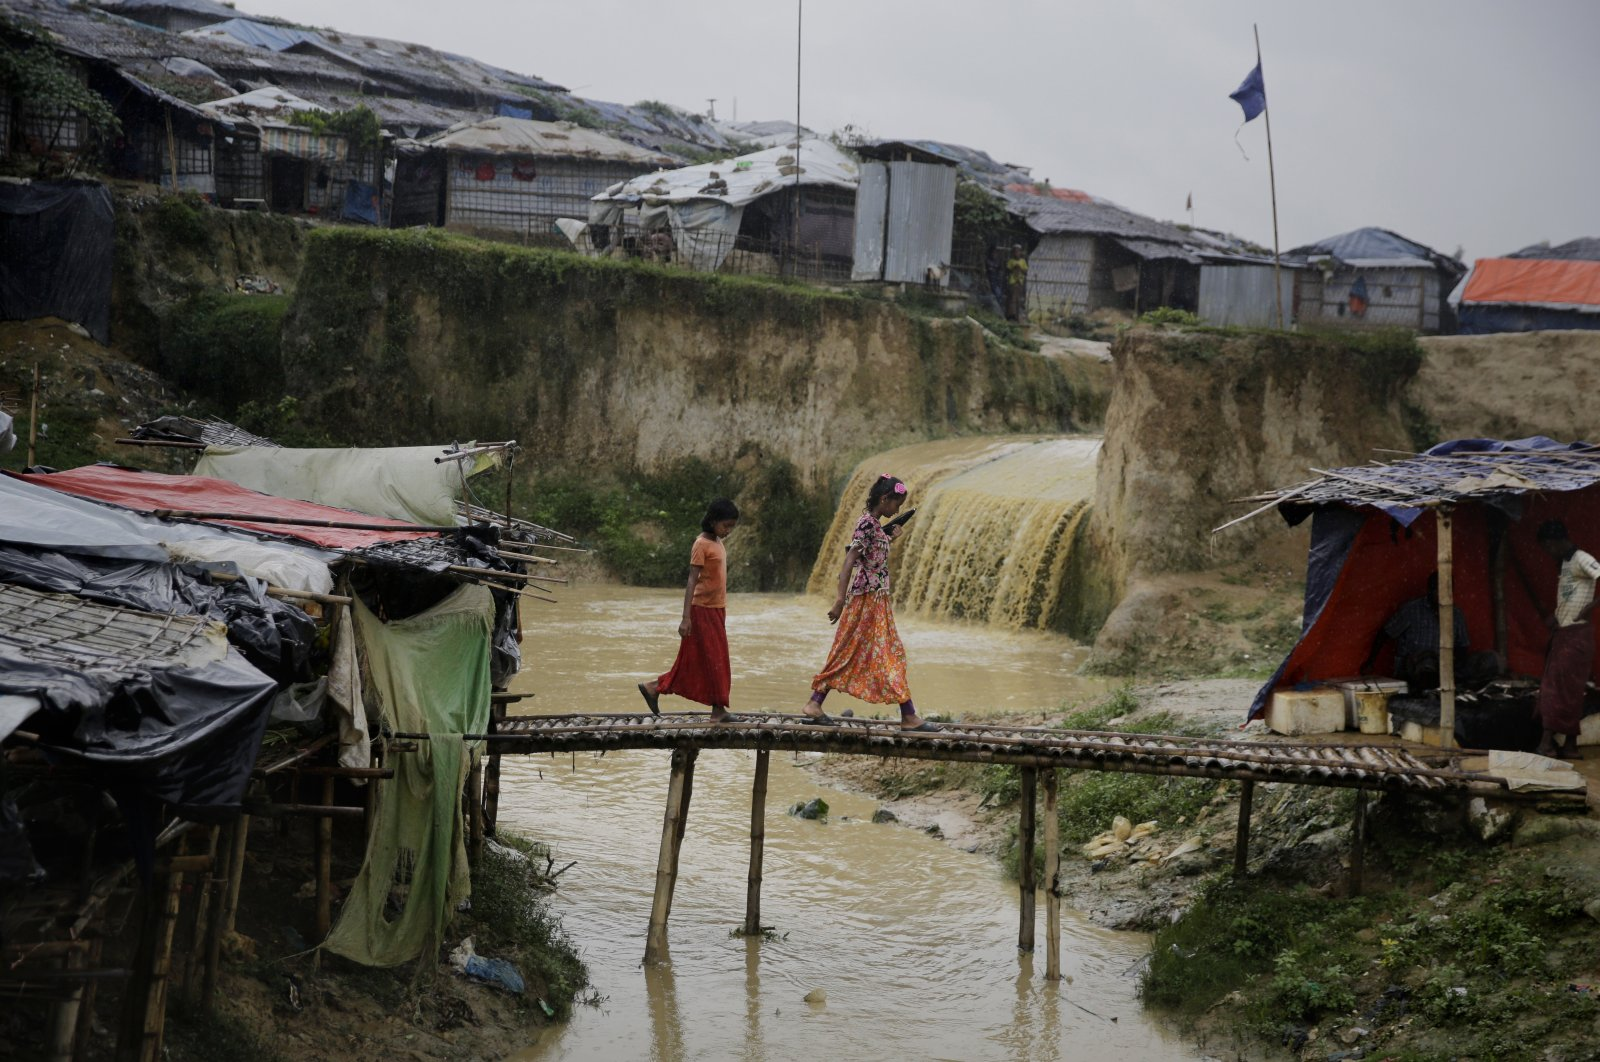 Rohingya refugee girls cross a makeshift bamboo bridge at Kutupalong refugee camp, Bangladesh, Aug. 28, 2018. (AP Photo)